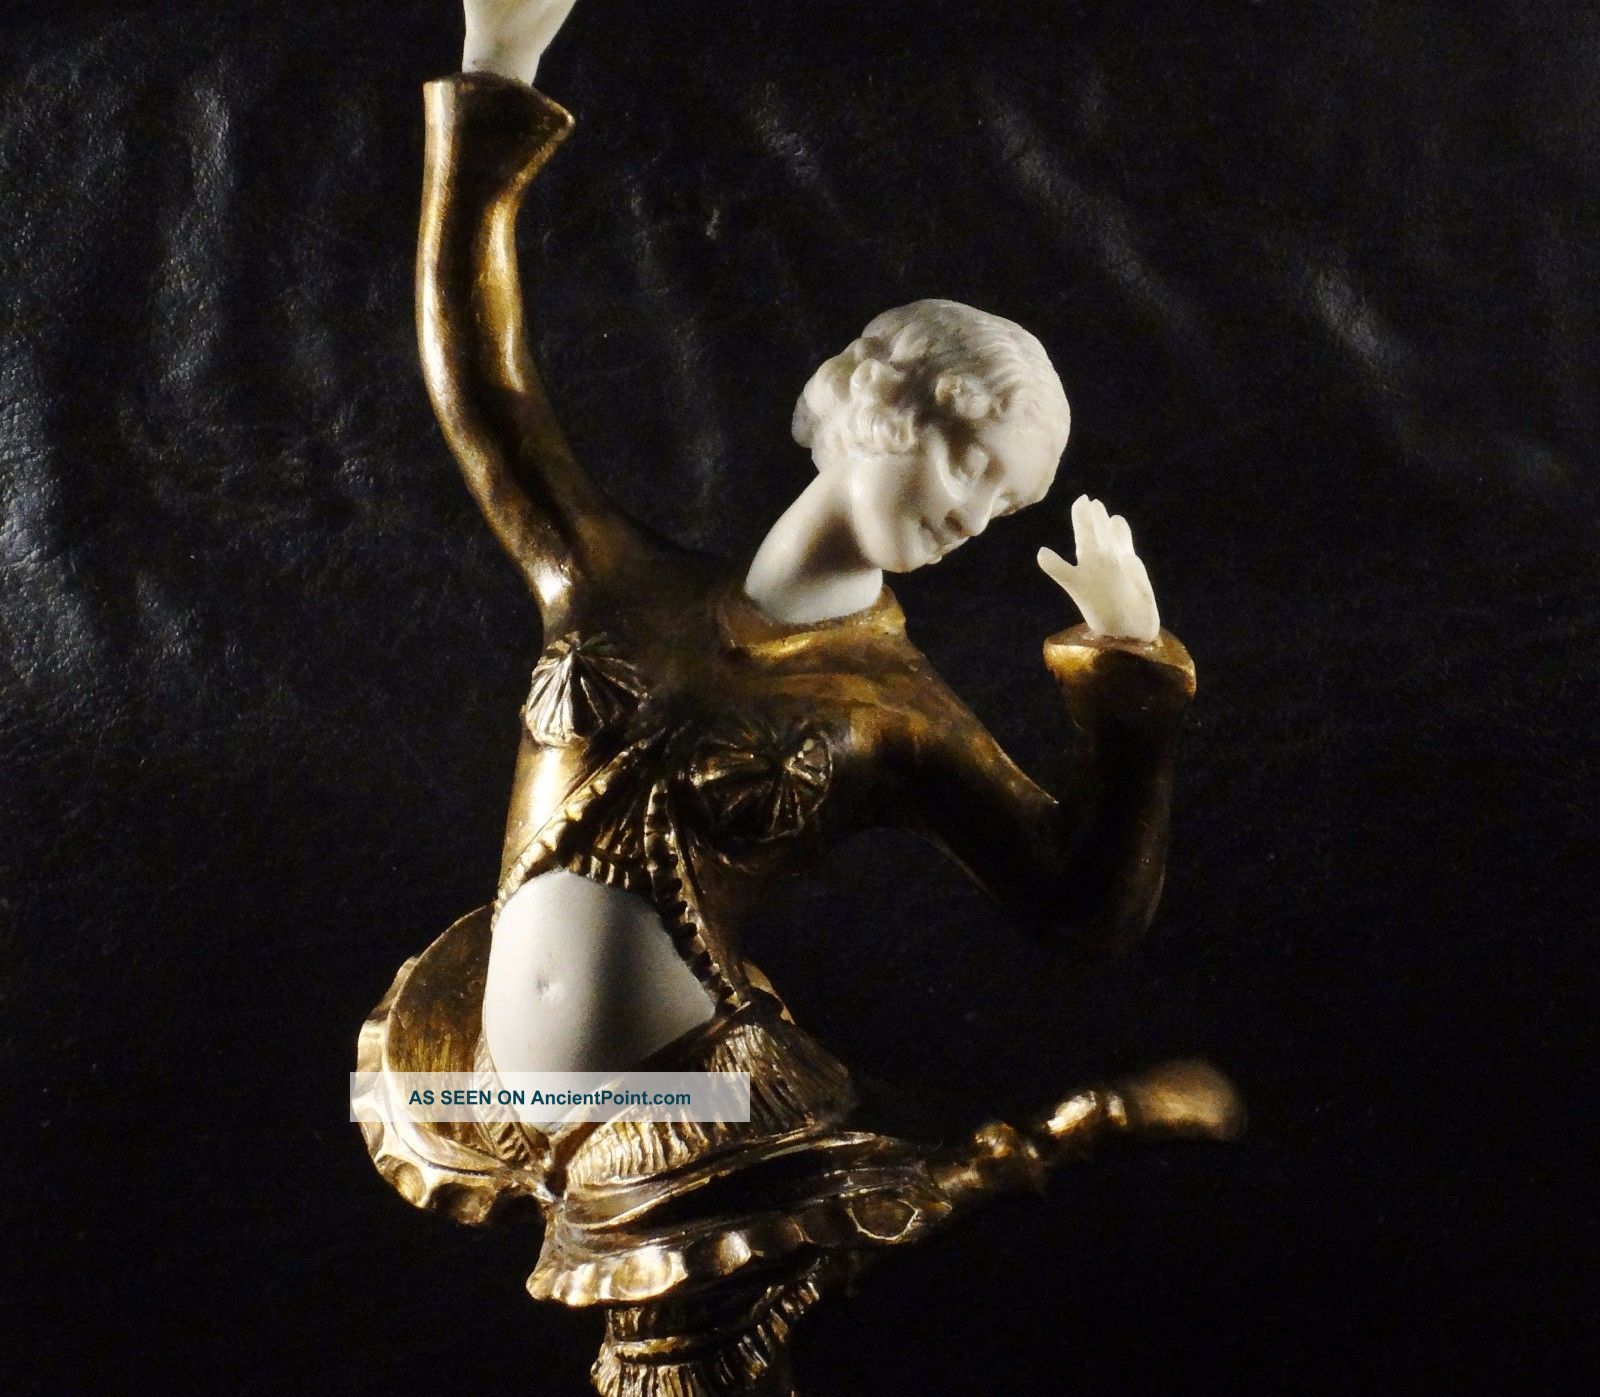 Antique Art Nouveau Dancer Bronze Biscuit Marble Sculpture Statue Figure See Art Nouveau photo